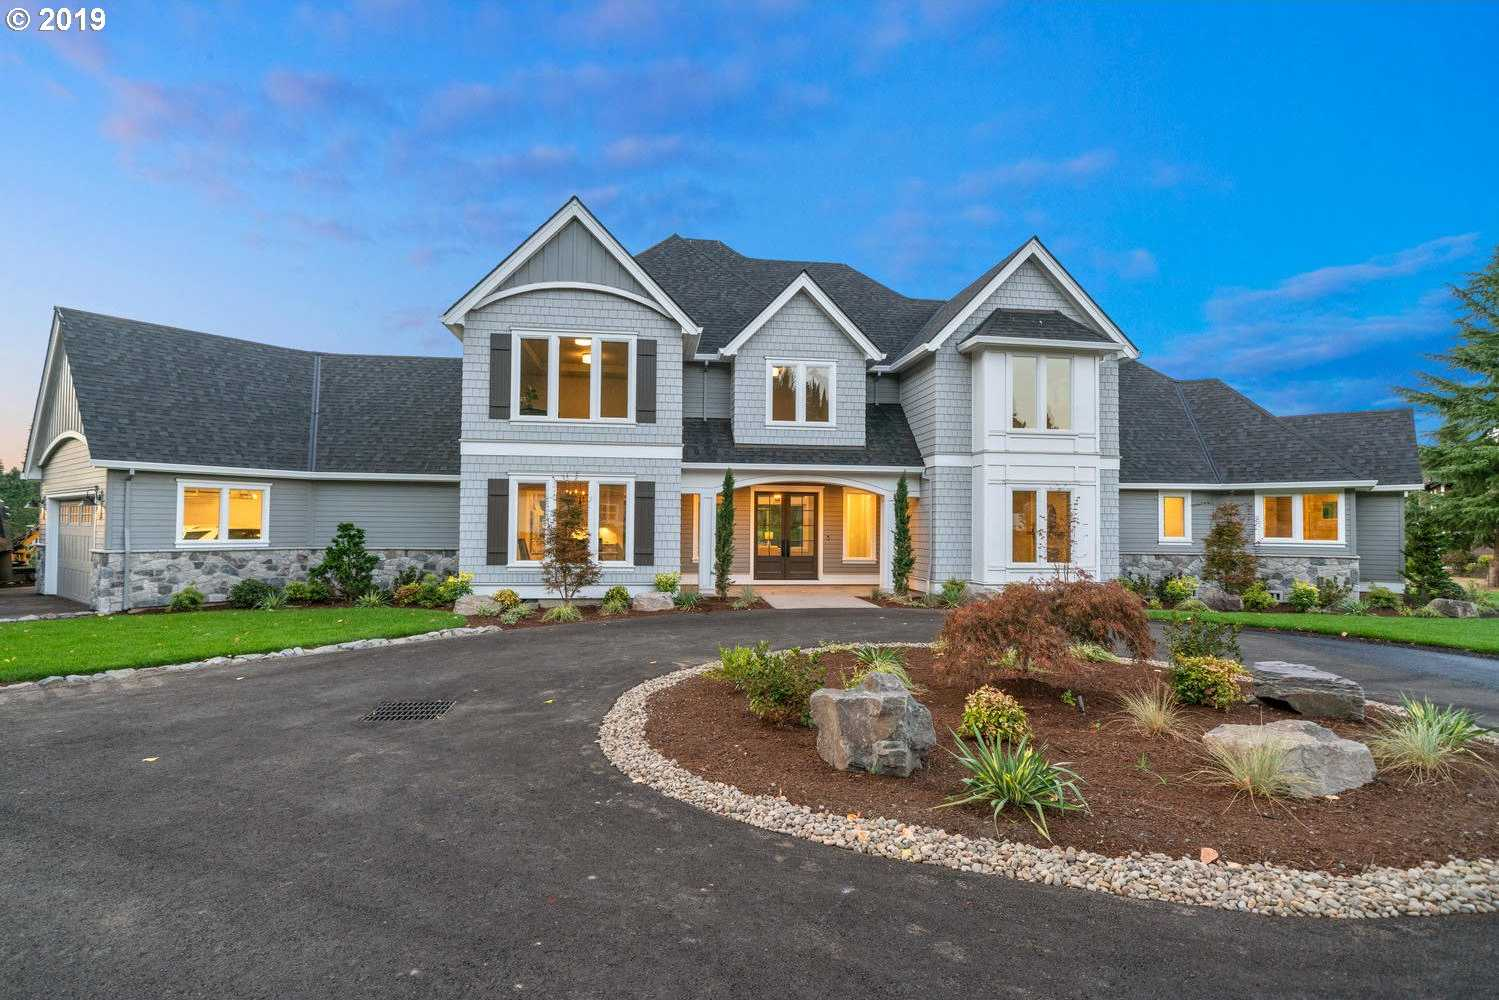 $1,699,000 - 4Br/4Ba -  for Sale in West Linn